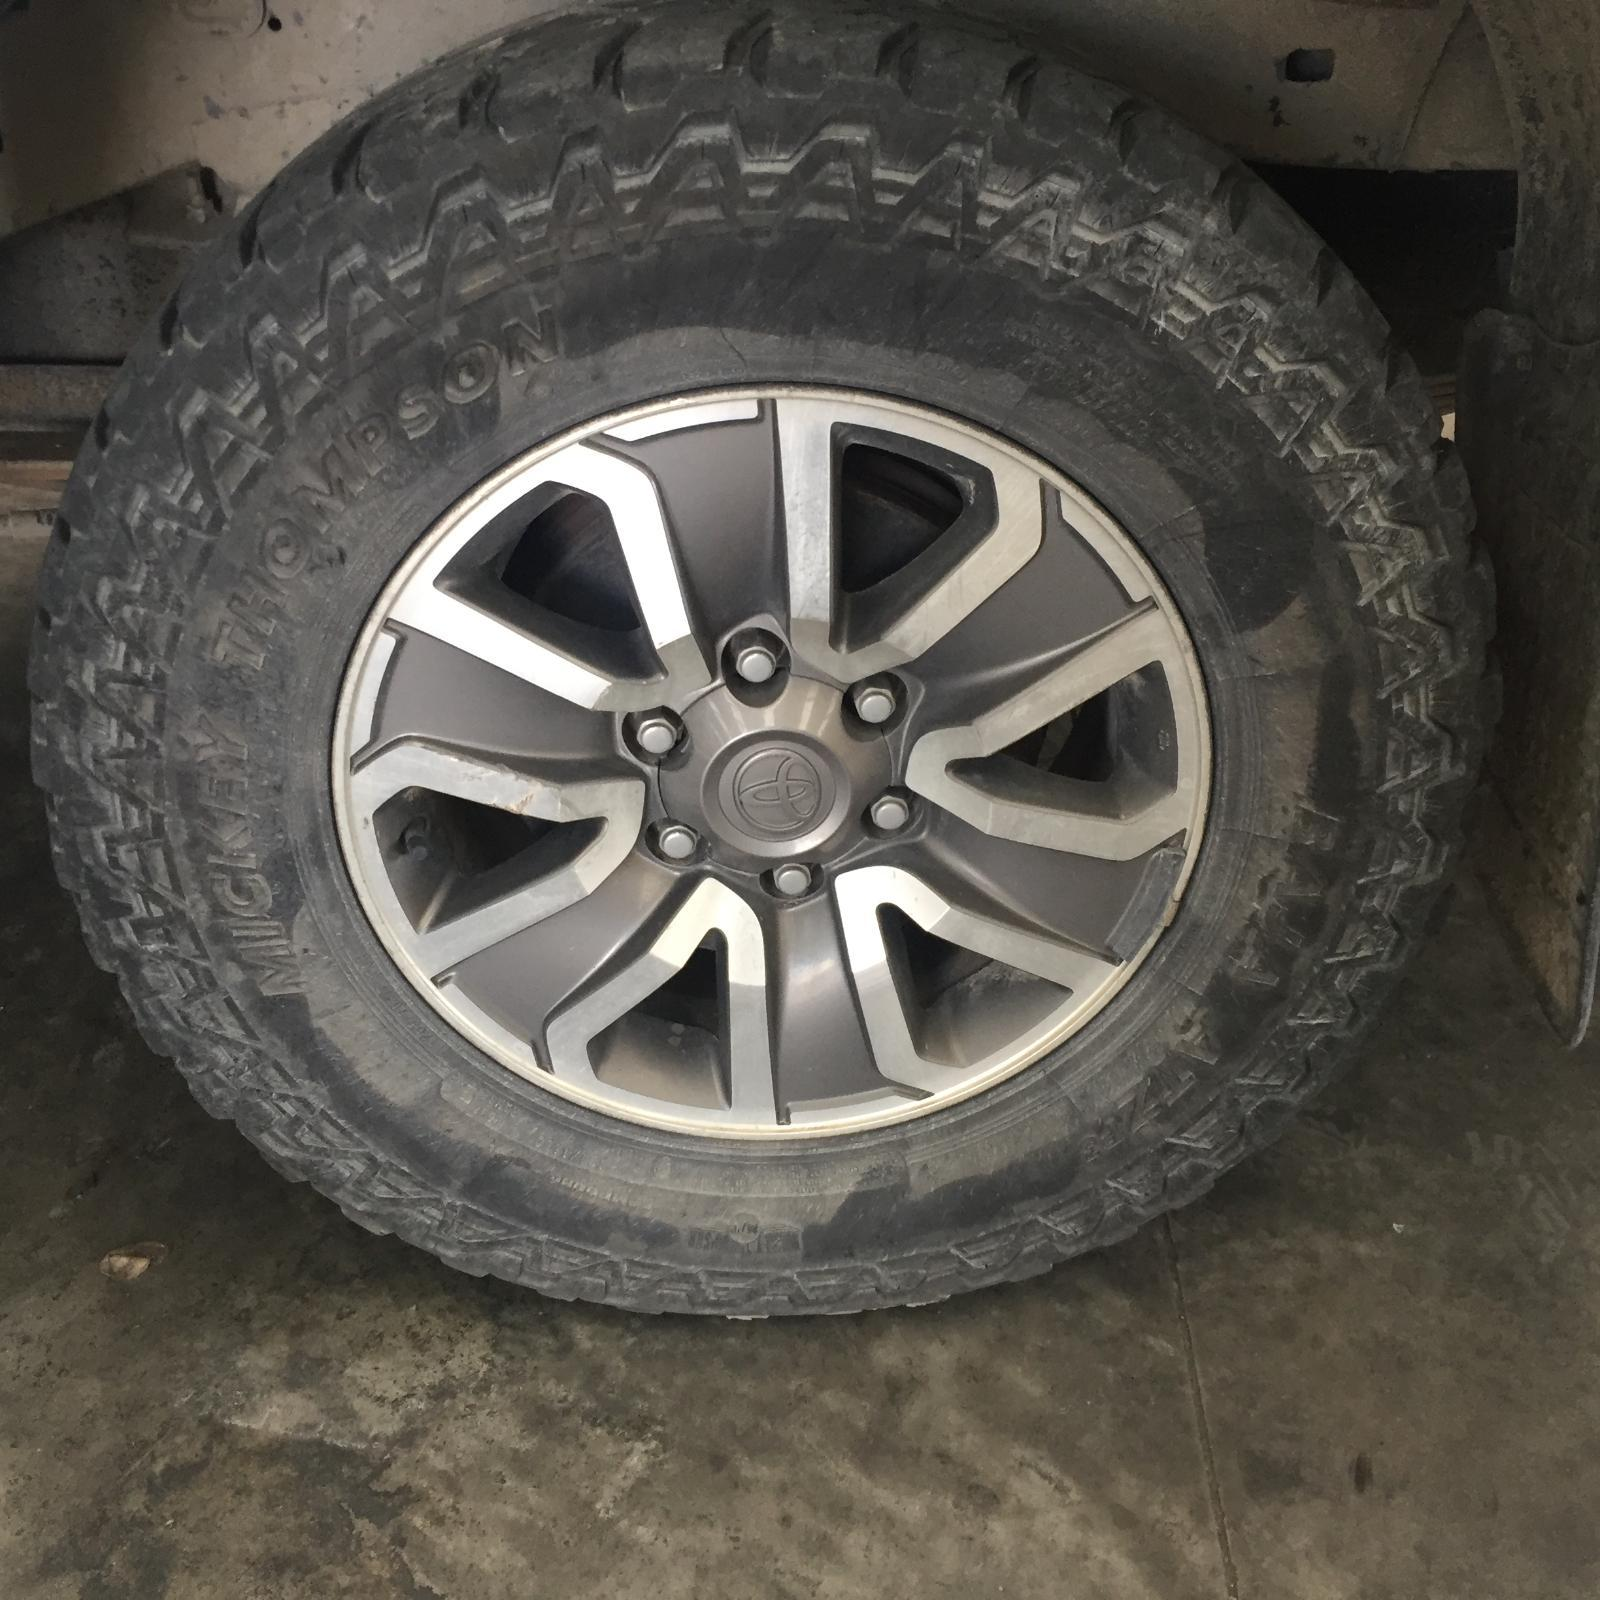 TOYOTA HILUX, Wheel Mag, FACTORY, 17X7.5IN, 4WD, TRD, 04/08-05/09